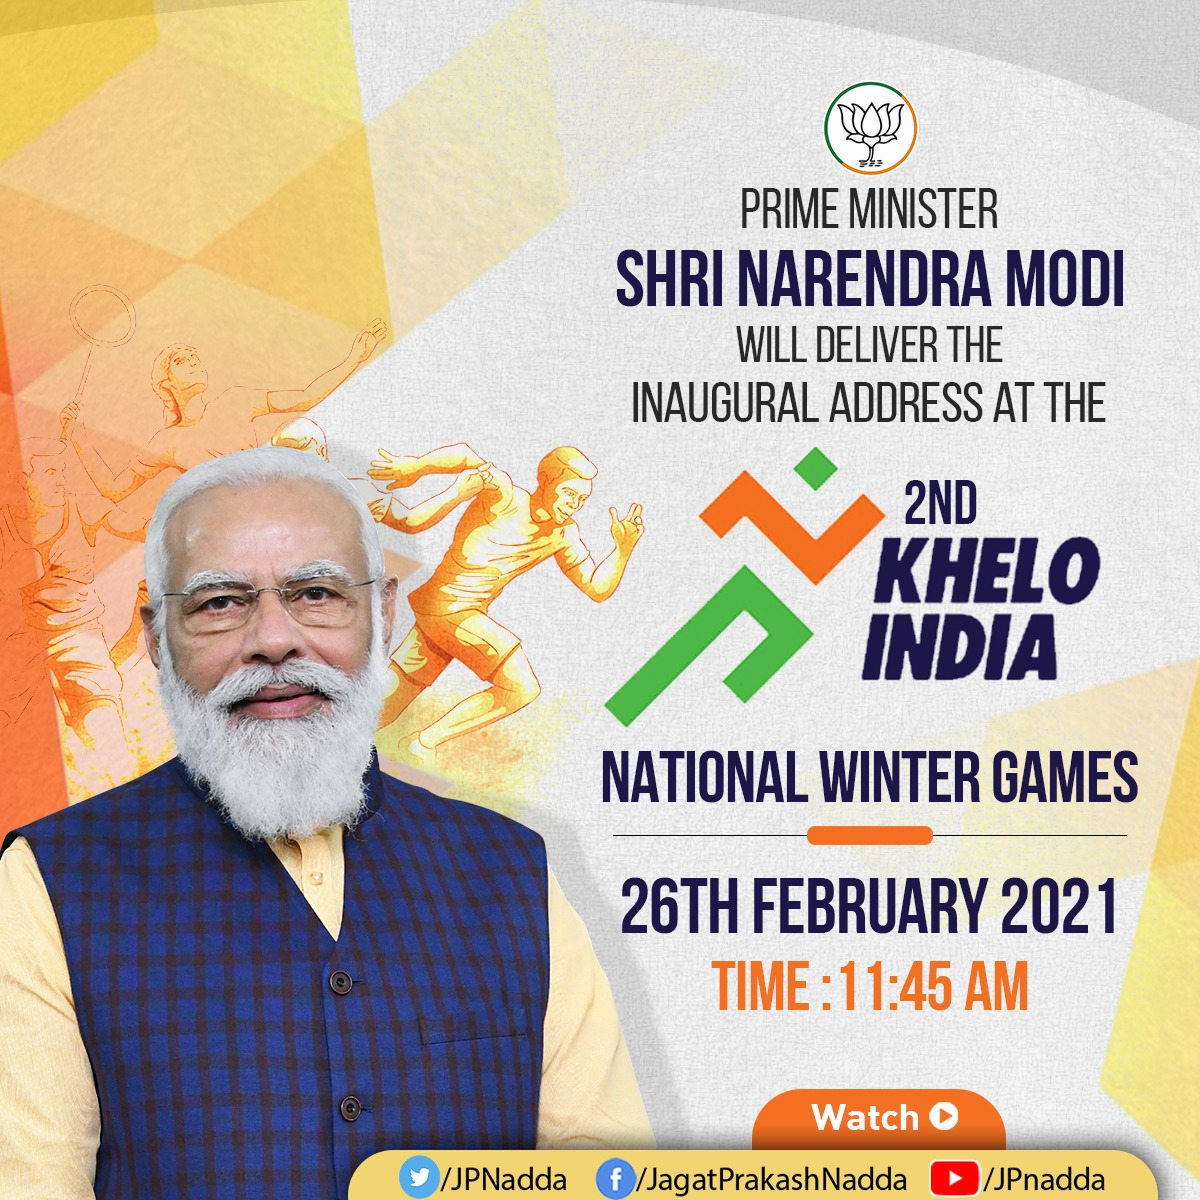 Hon Prime Minister Shri @narendramodi Ji will deliver the inaugural address at the 2nd Khelo India National Winter Games at 11:45 AM tomorrow.